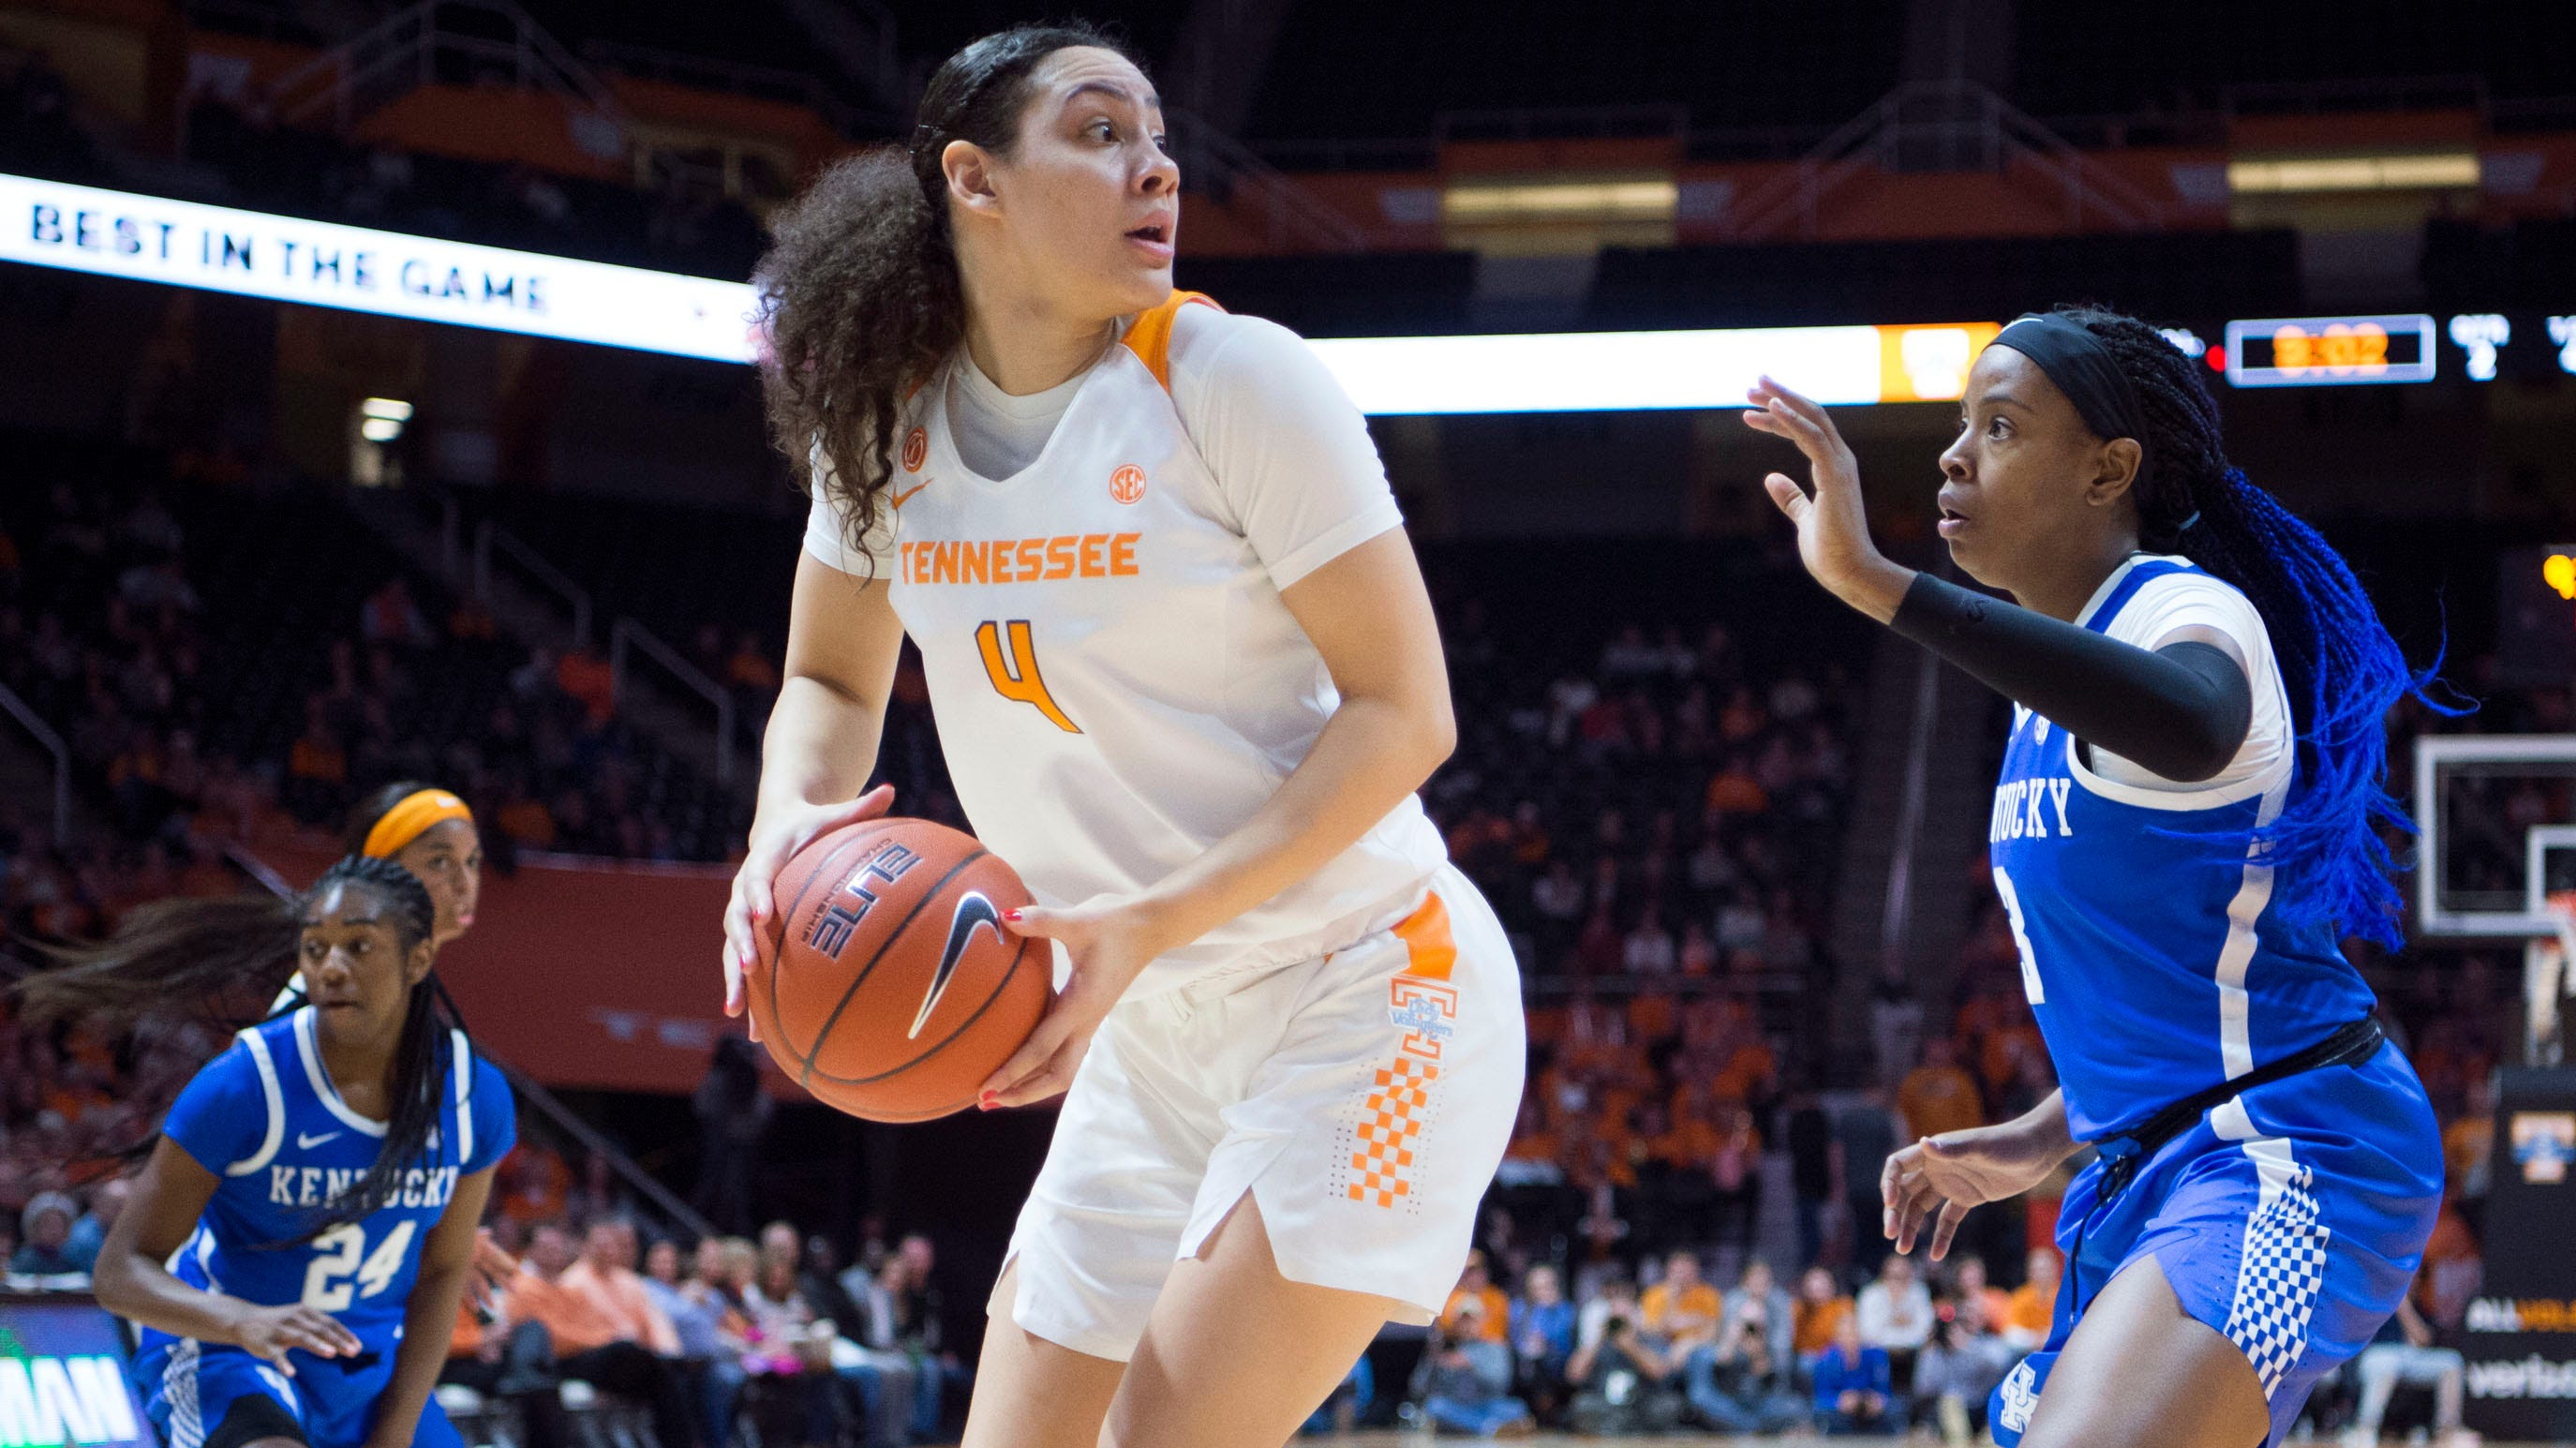 Uk Basketball: Tennessee Lady Vols Vs. Kentucky Wildcats